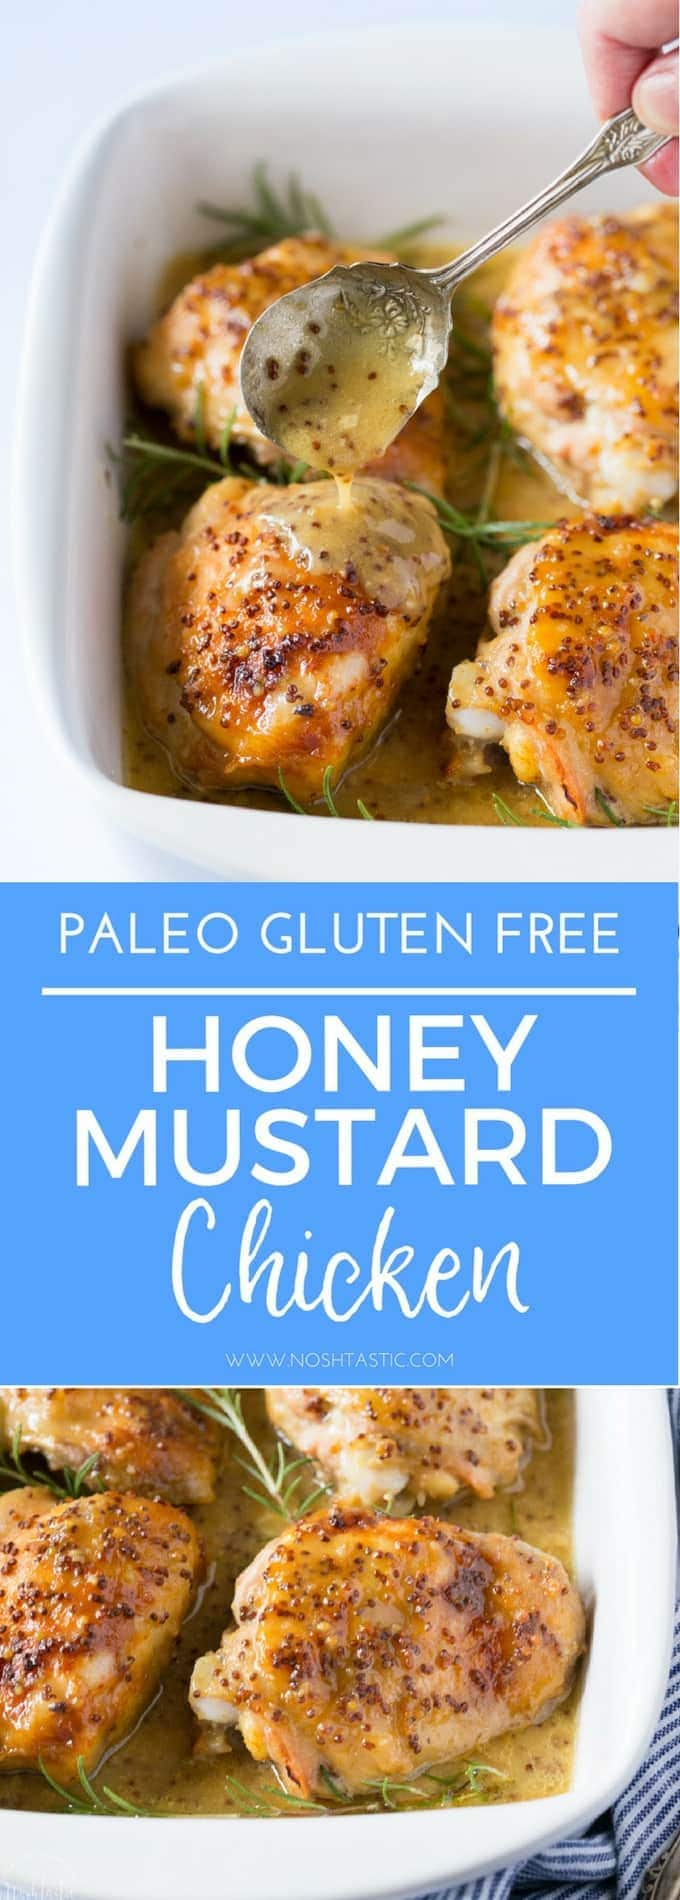 My Paleo Honey Mustard Chicken is so simple to prepare and cooks in the oven in about 45 minutes, It's such an easy weeknight dinner that your whole family will love! Gluten Free